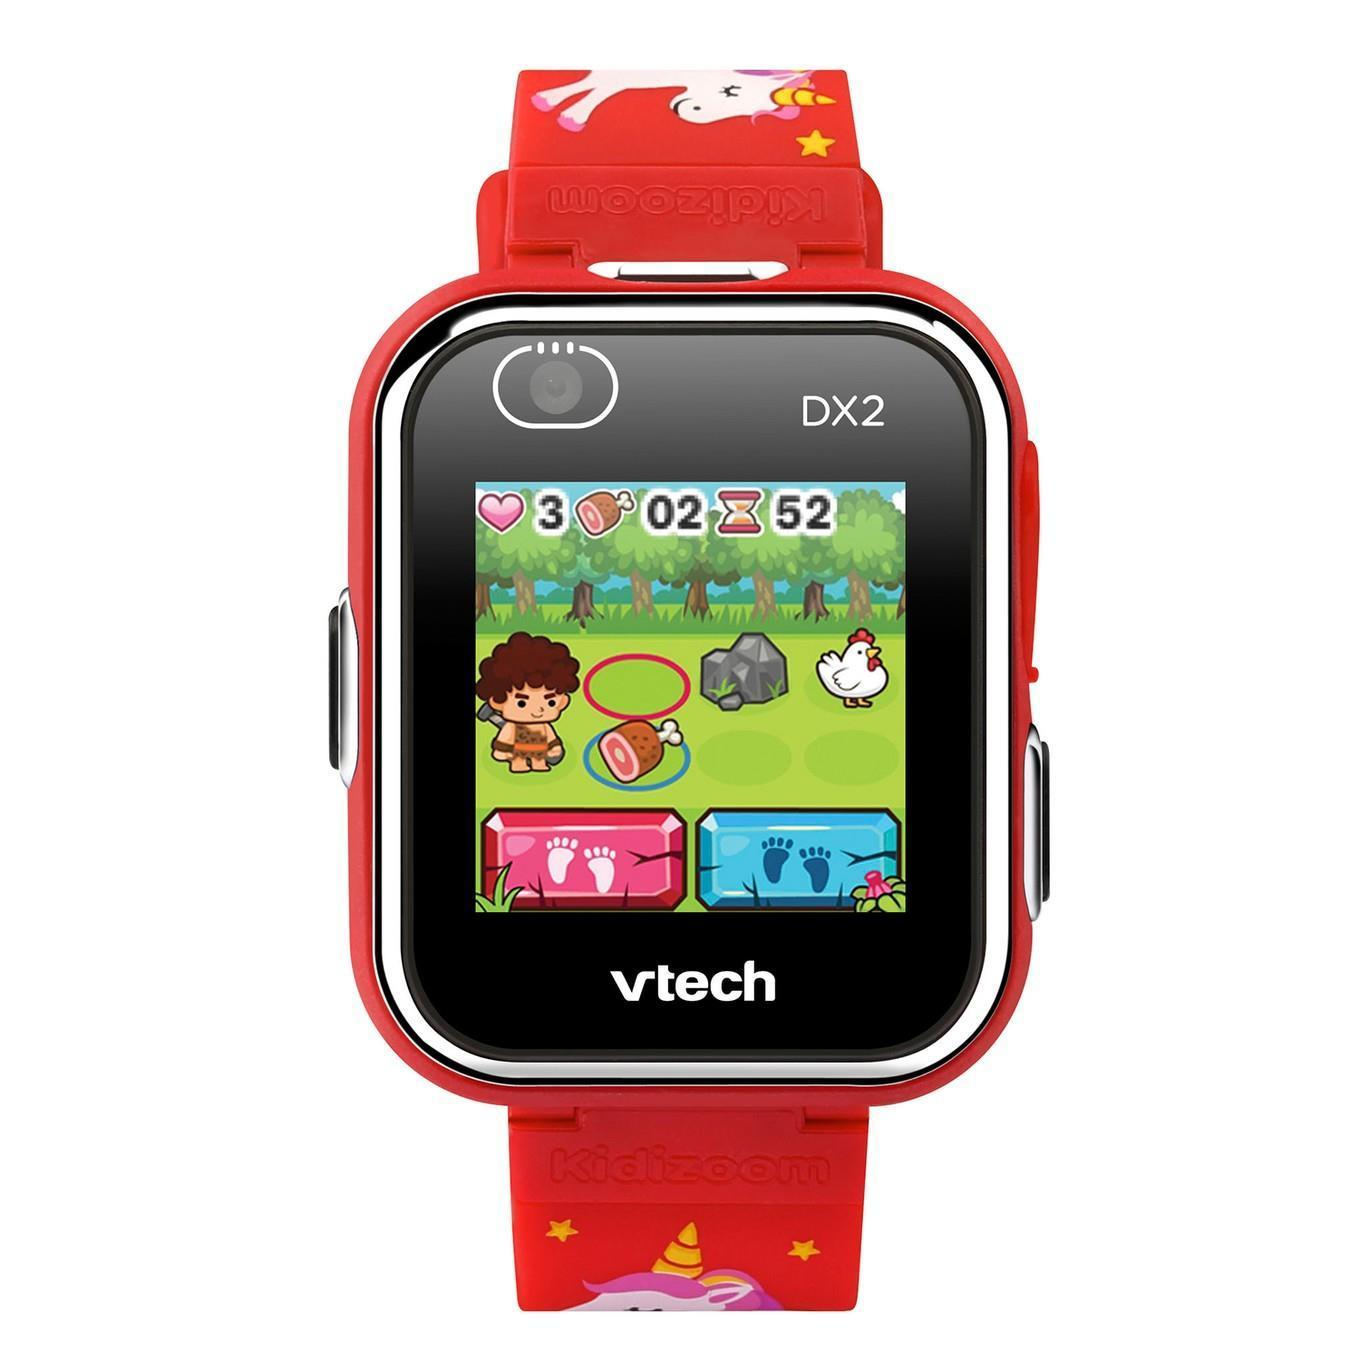 VTech Kidizoom DX2 Smartwatch (Red)